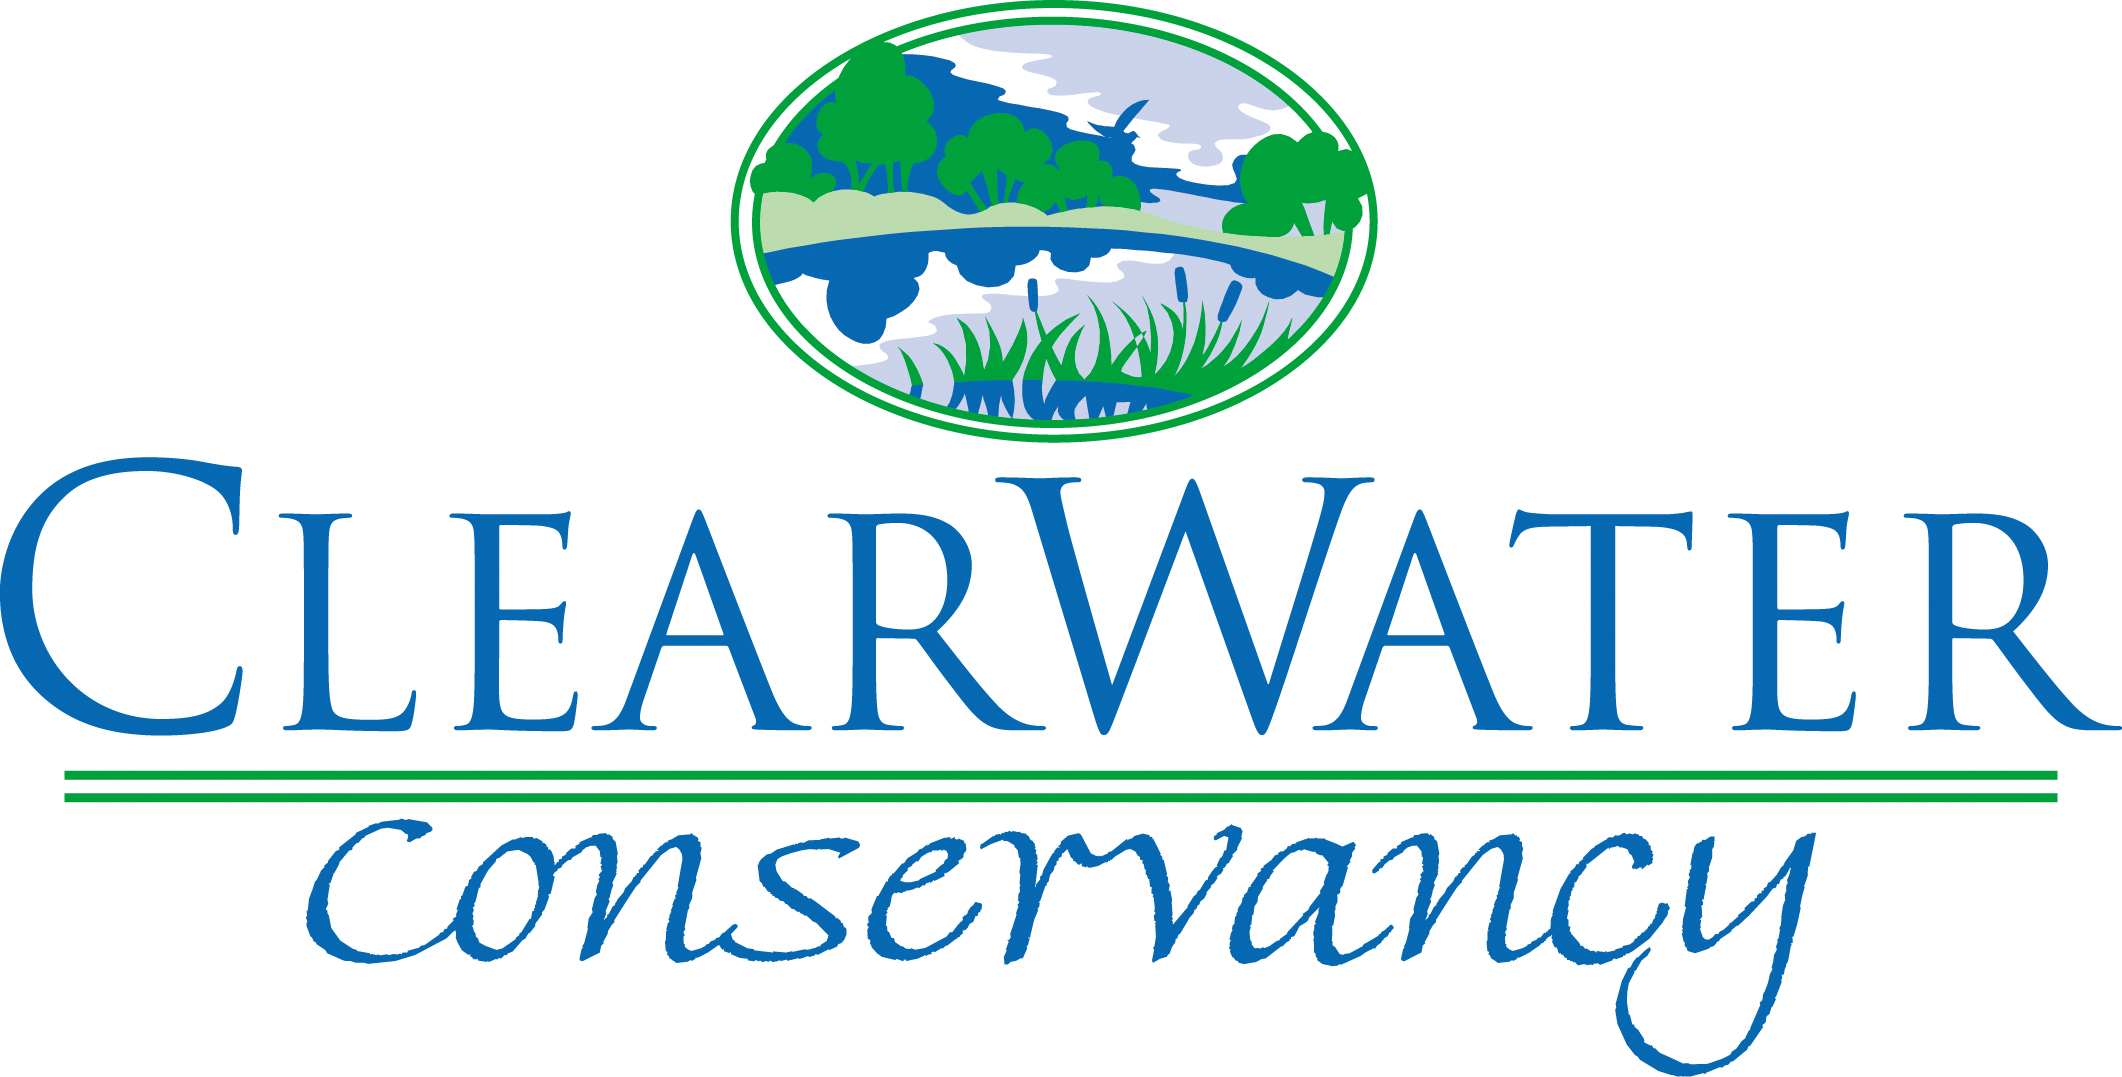 ClearwaterConservancy_RGB.jpg